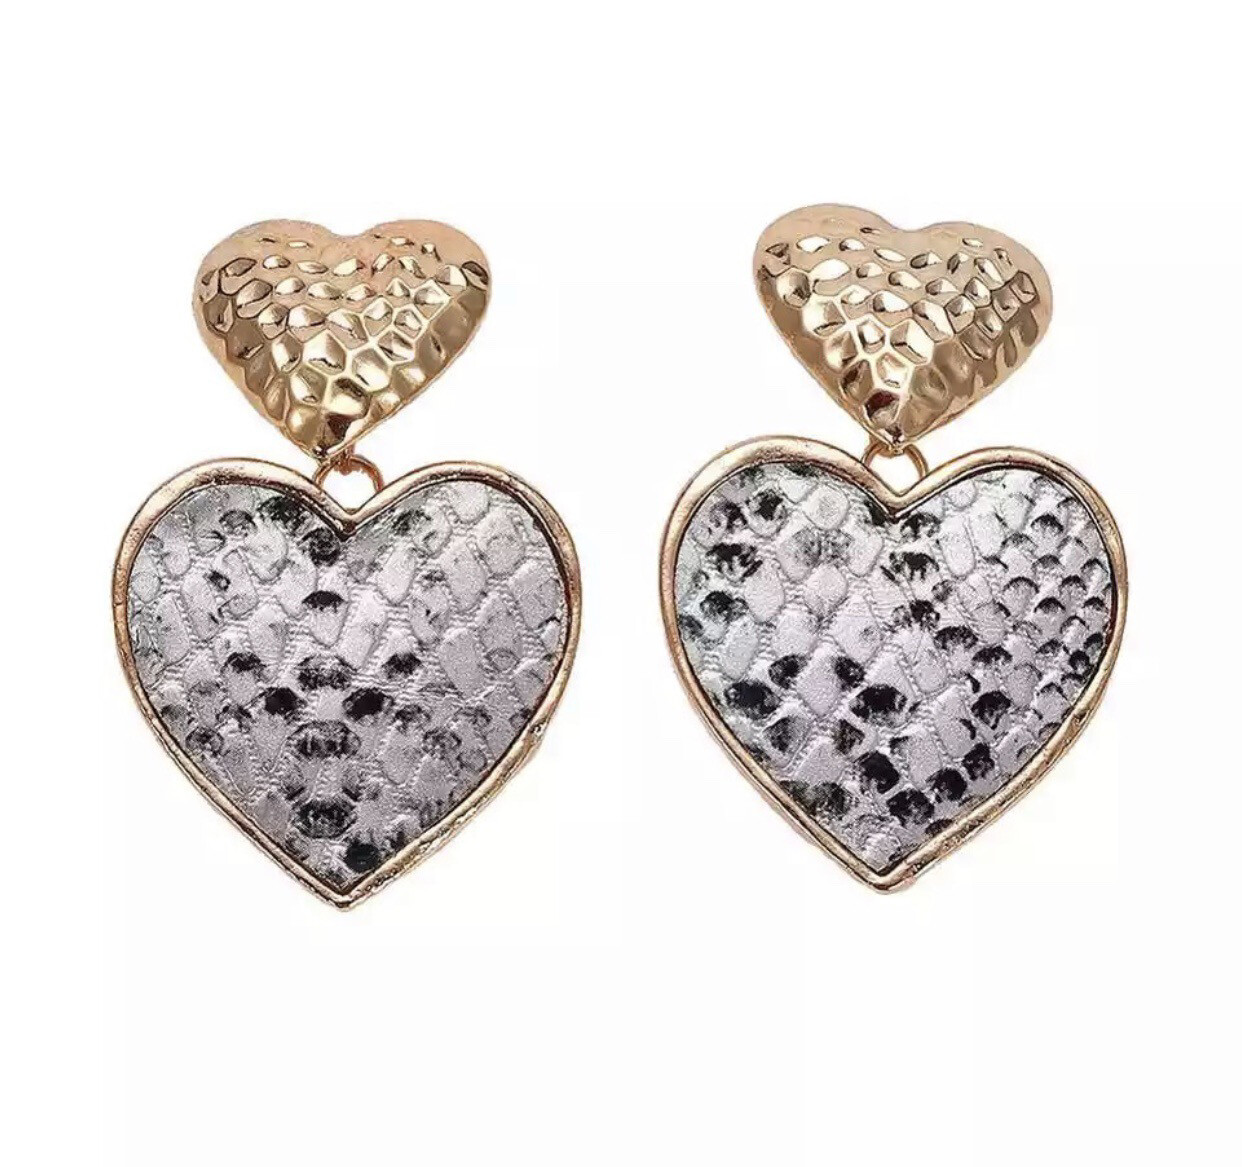 Kira Heart Earrings